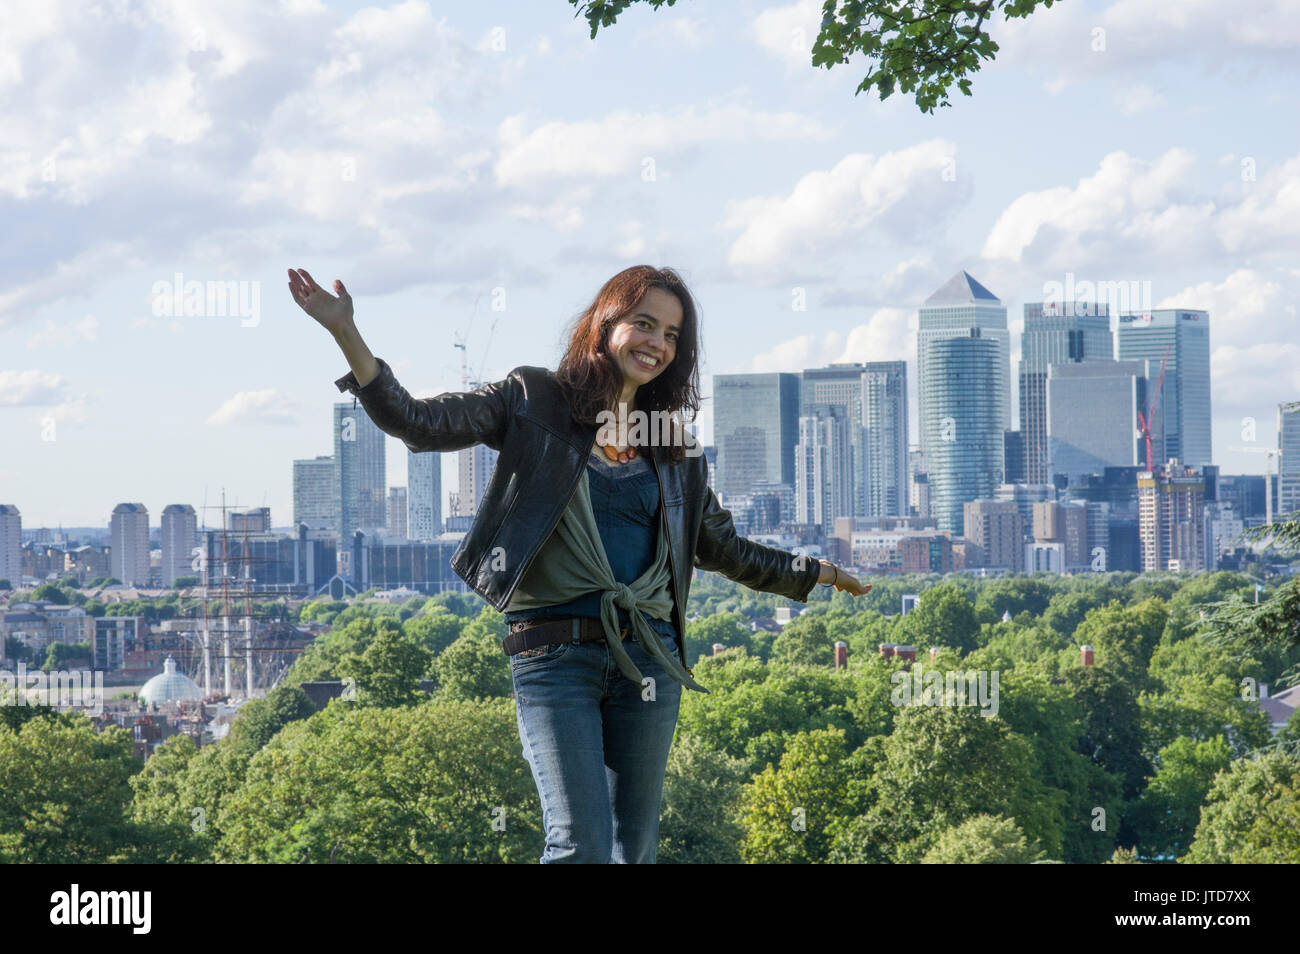 Woman stands in South London with The City of London and views of Canary Wharf in the background on a sunny day - Stock Image